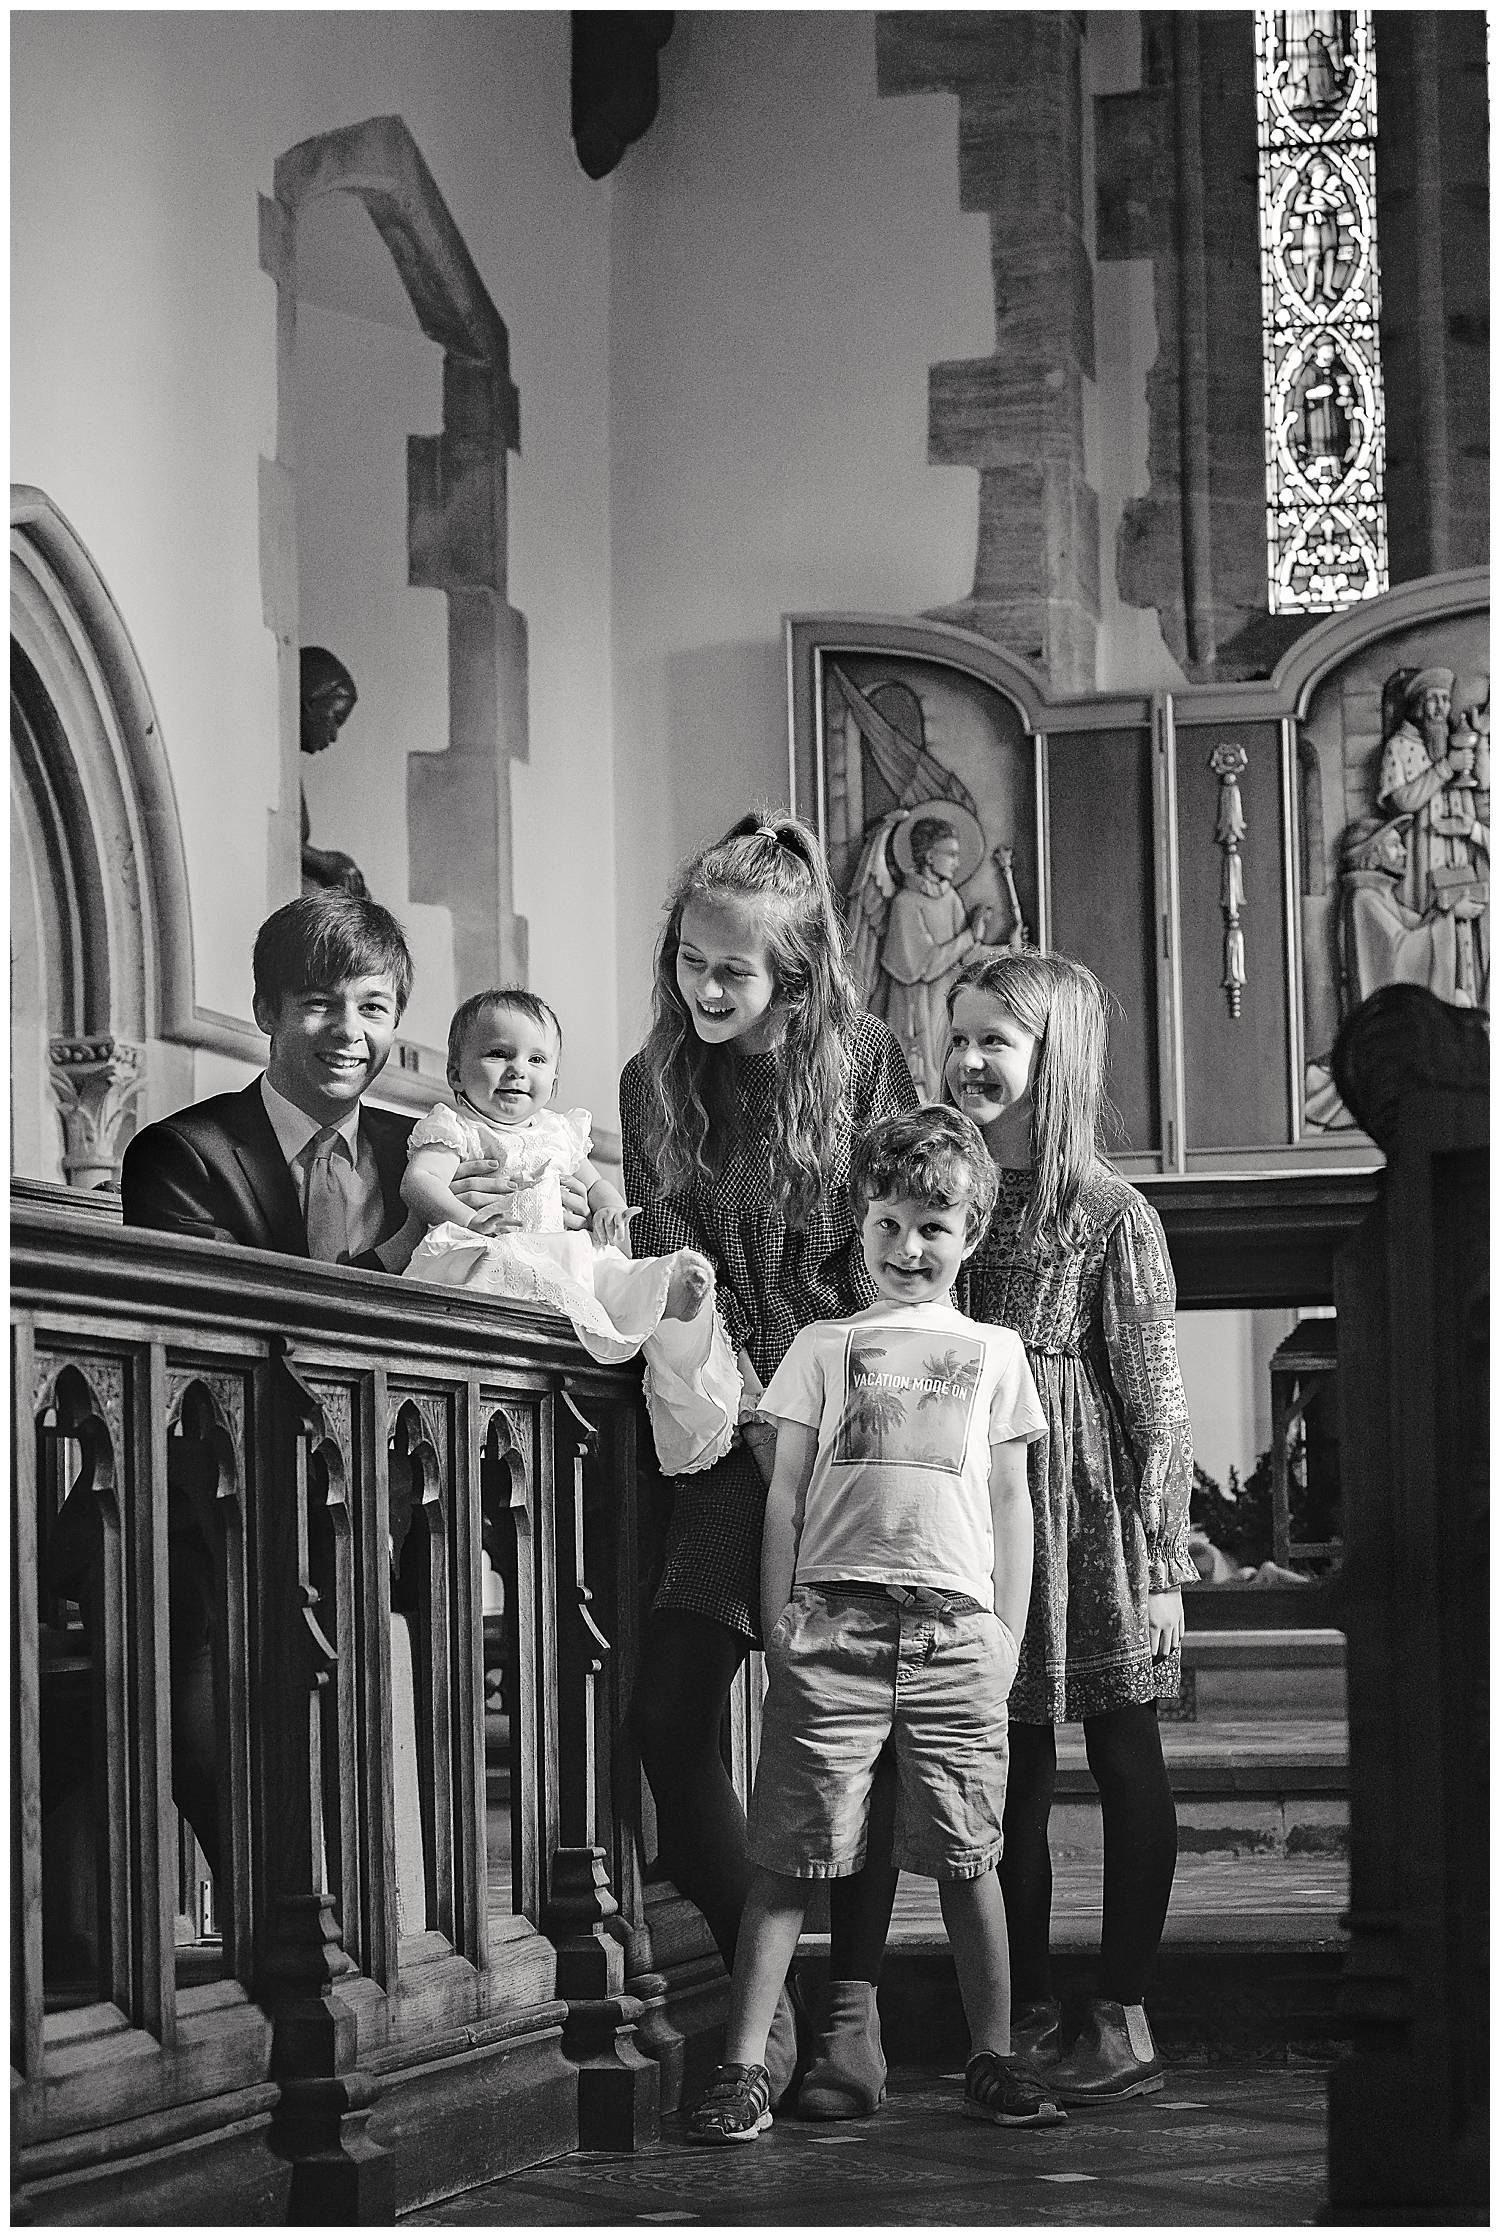 Four children standing in church looking at their new baby cousin who is about to be christened